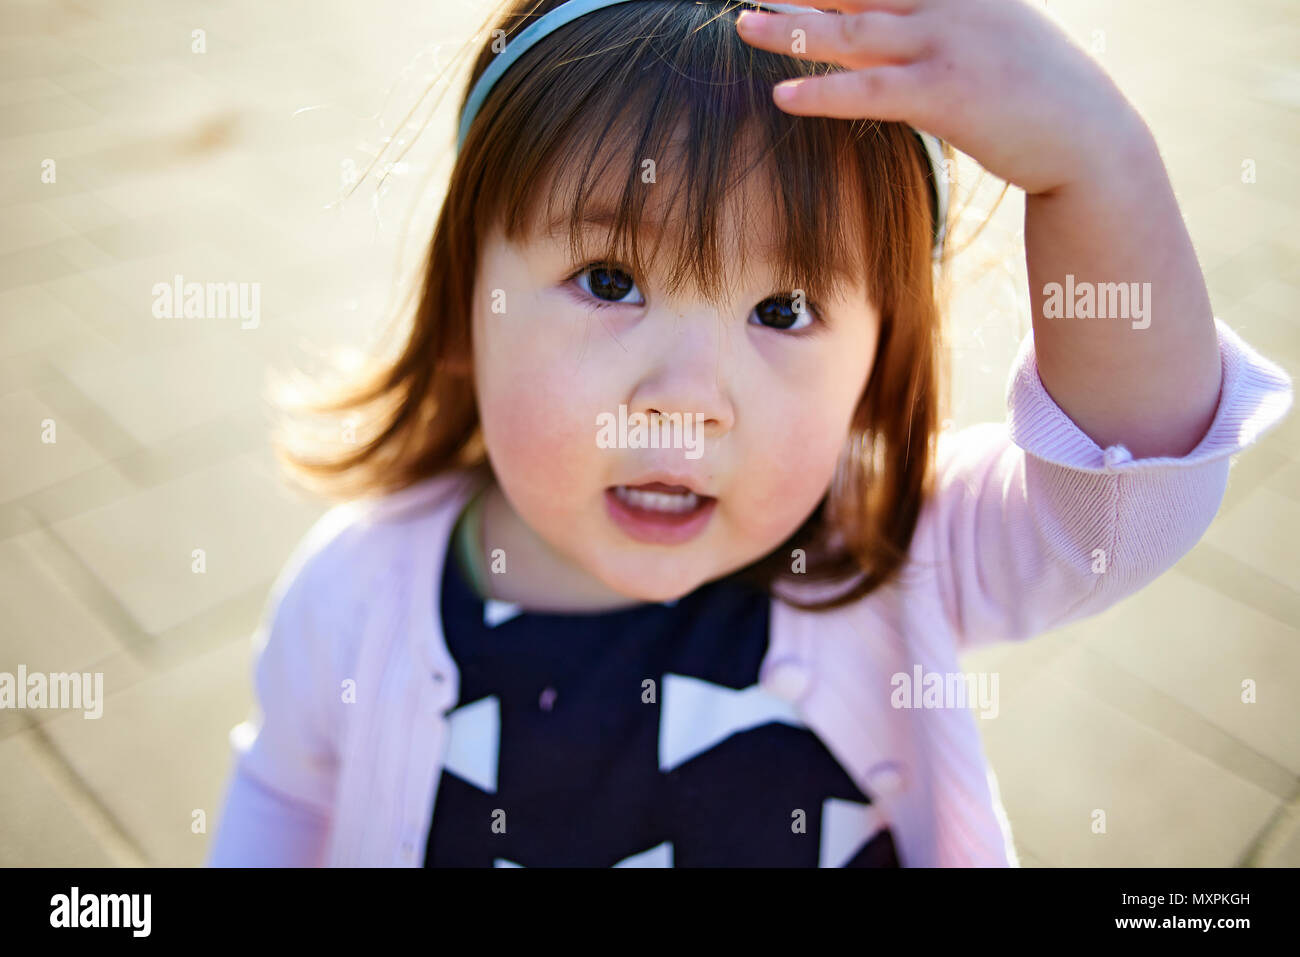 Portrait of a cute young Asian baby girl with rosey cheeks in cold weather looking into camera - Stock Image